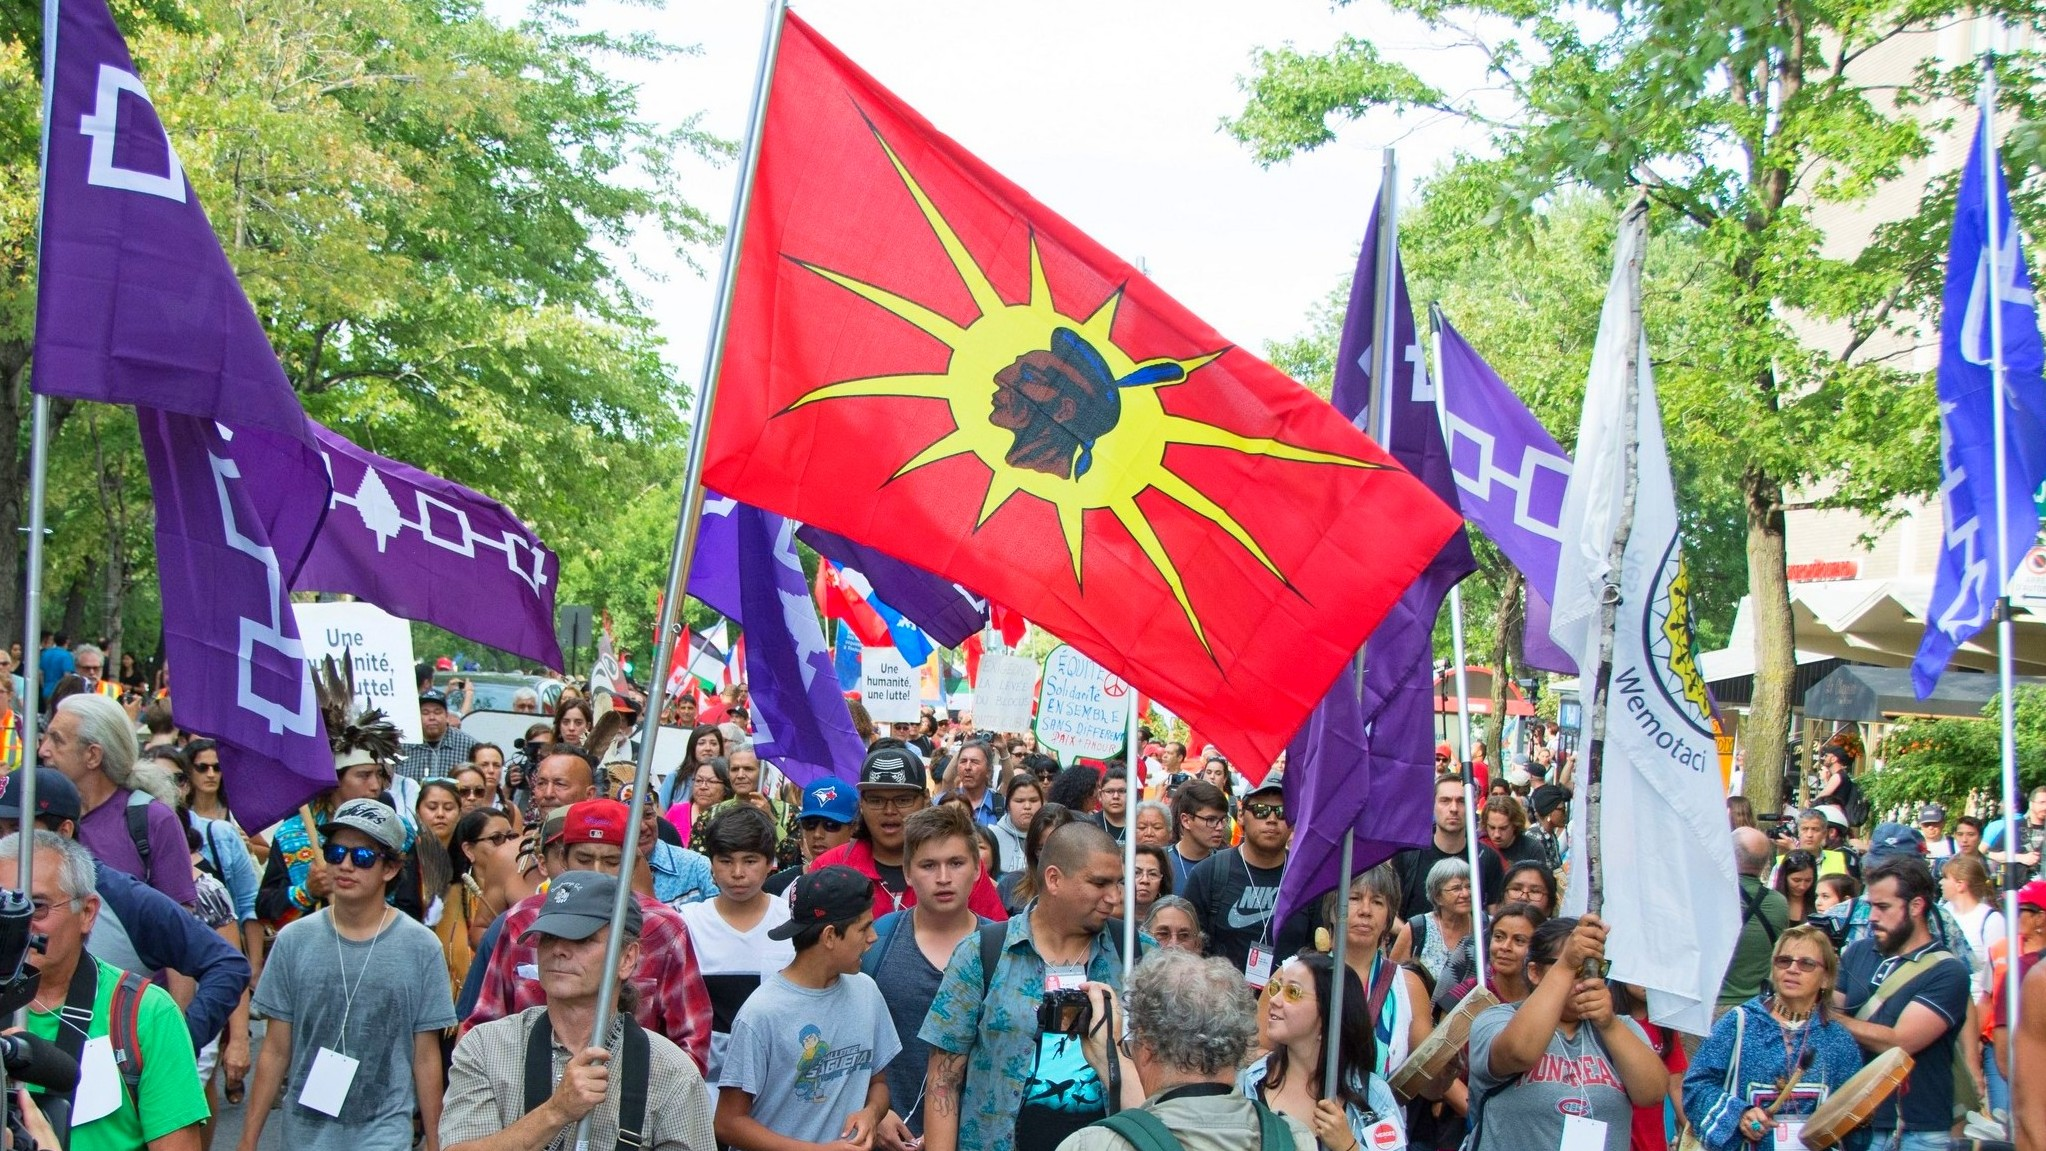 mother earth's children lead the march of over 10,000 people in search of world peace.